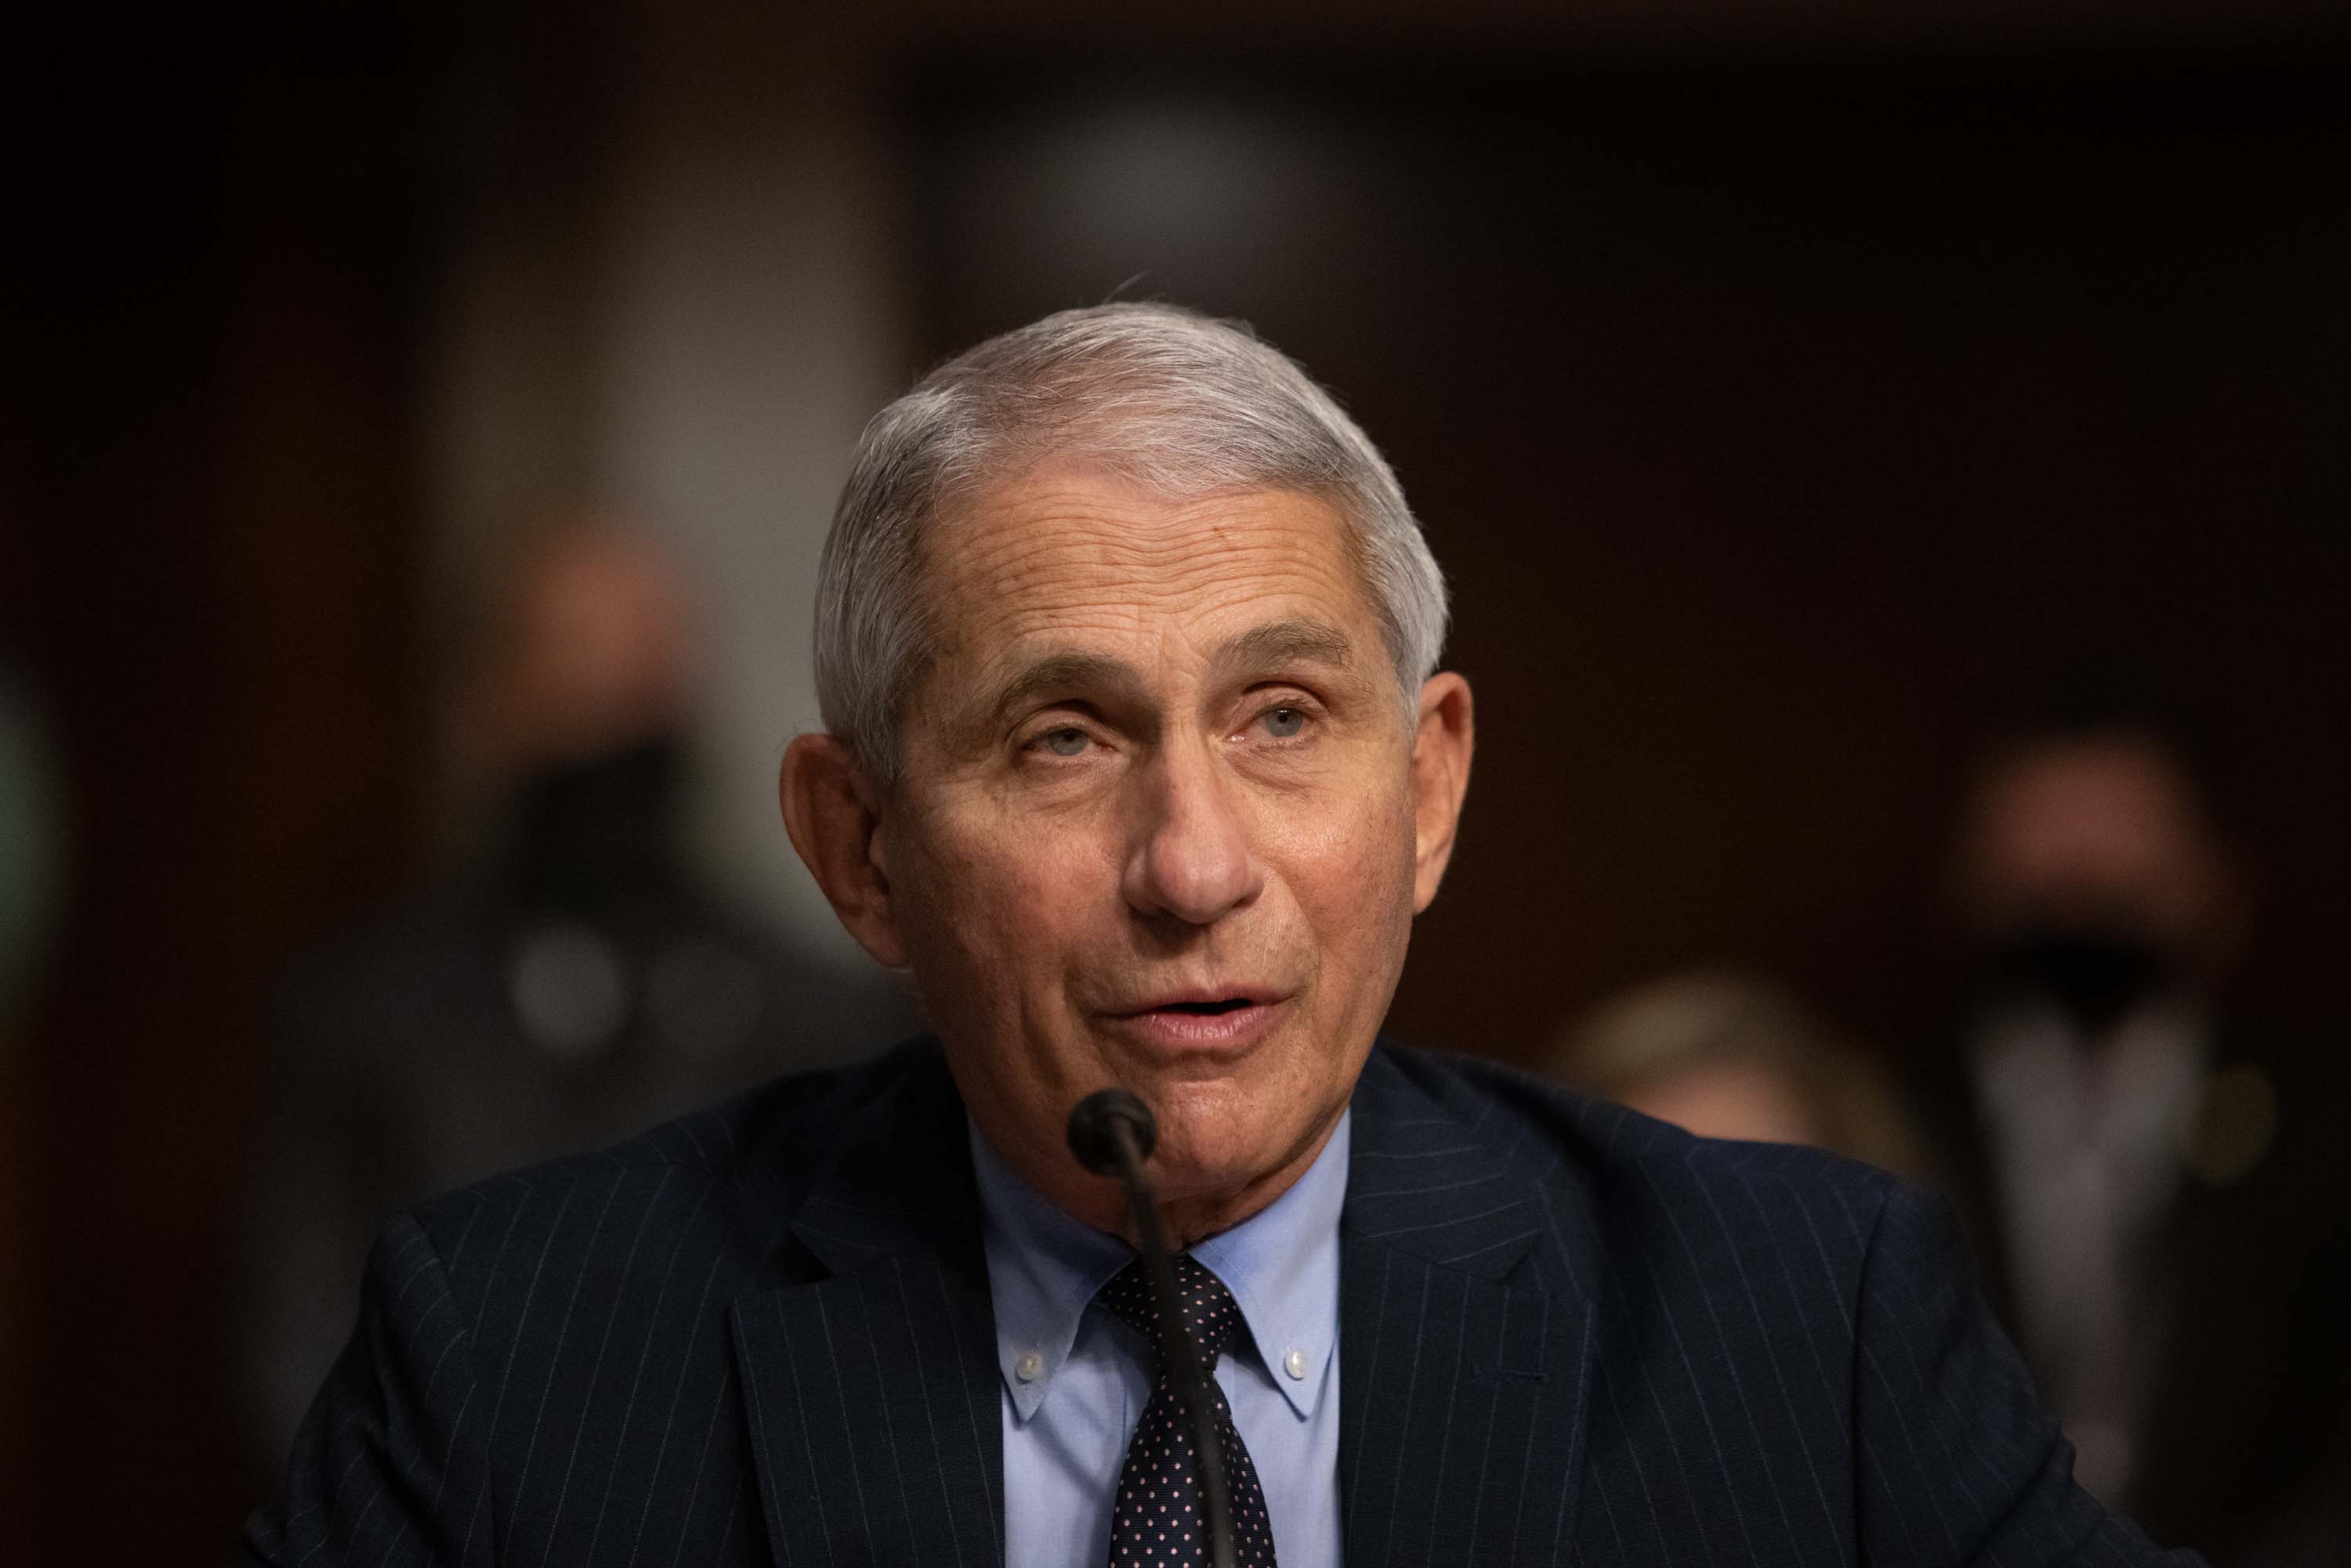 Dr. Anthony Fauci is pictured testifying during a US Senate Senate Health, Education, Labor, and Pensions Committee hearing in Washington, DC, on September 23.